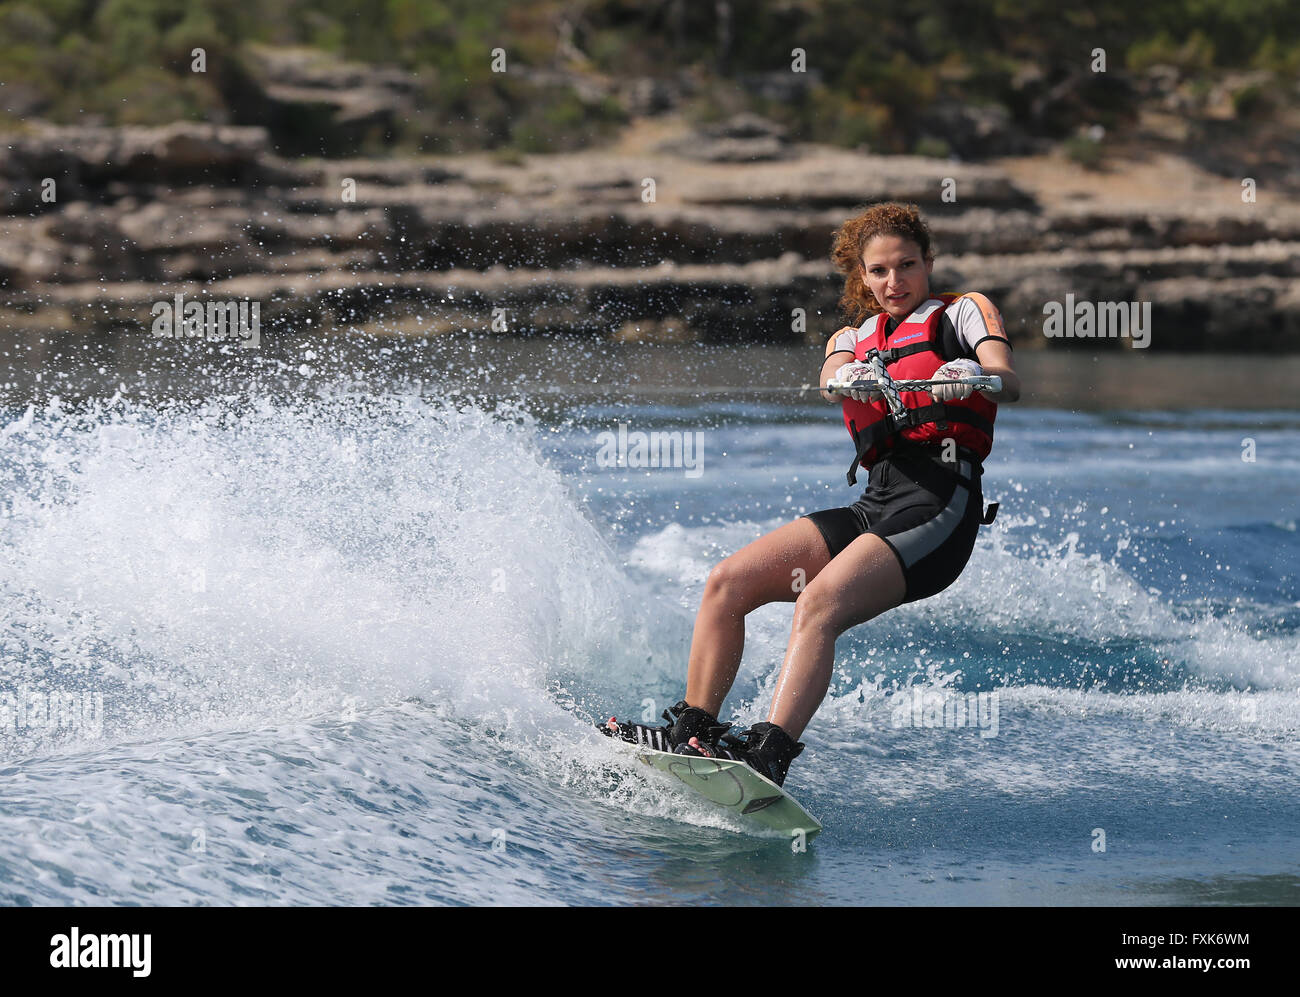 Young woman wakeboarding, Camyuva, Antalya Province, Turkey - Stock Image